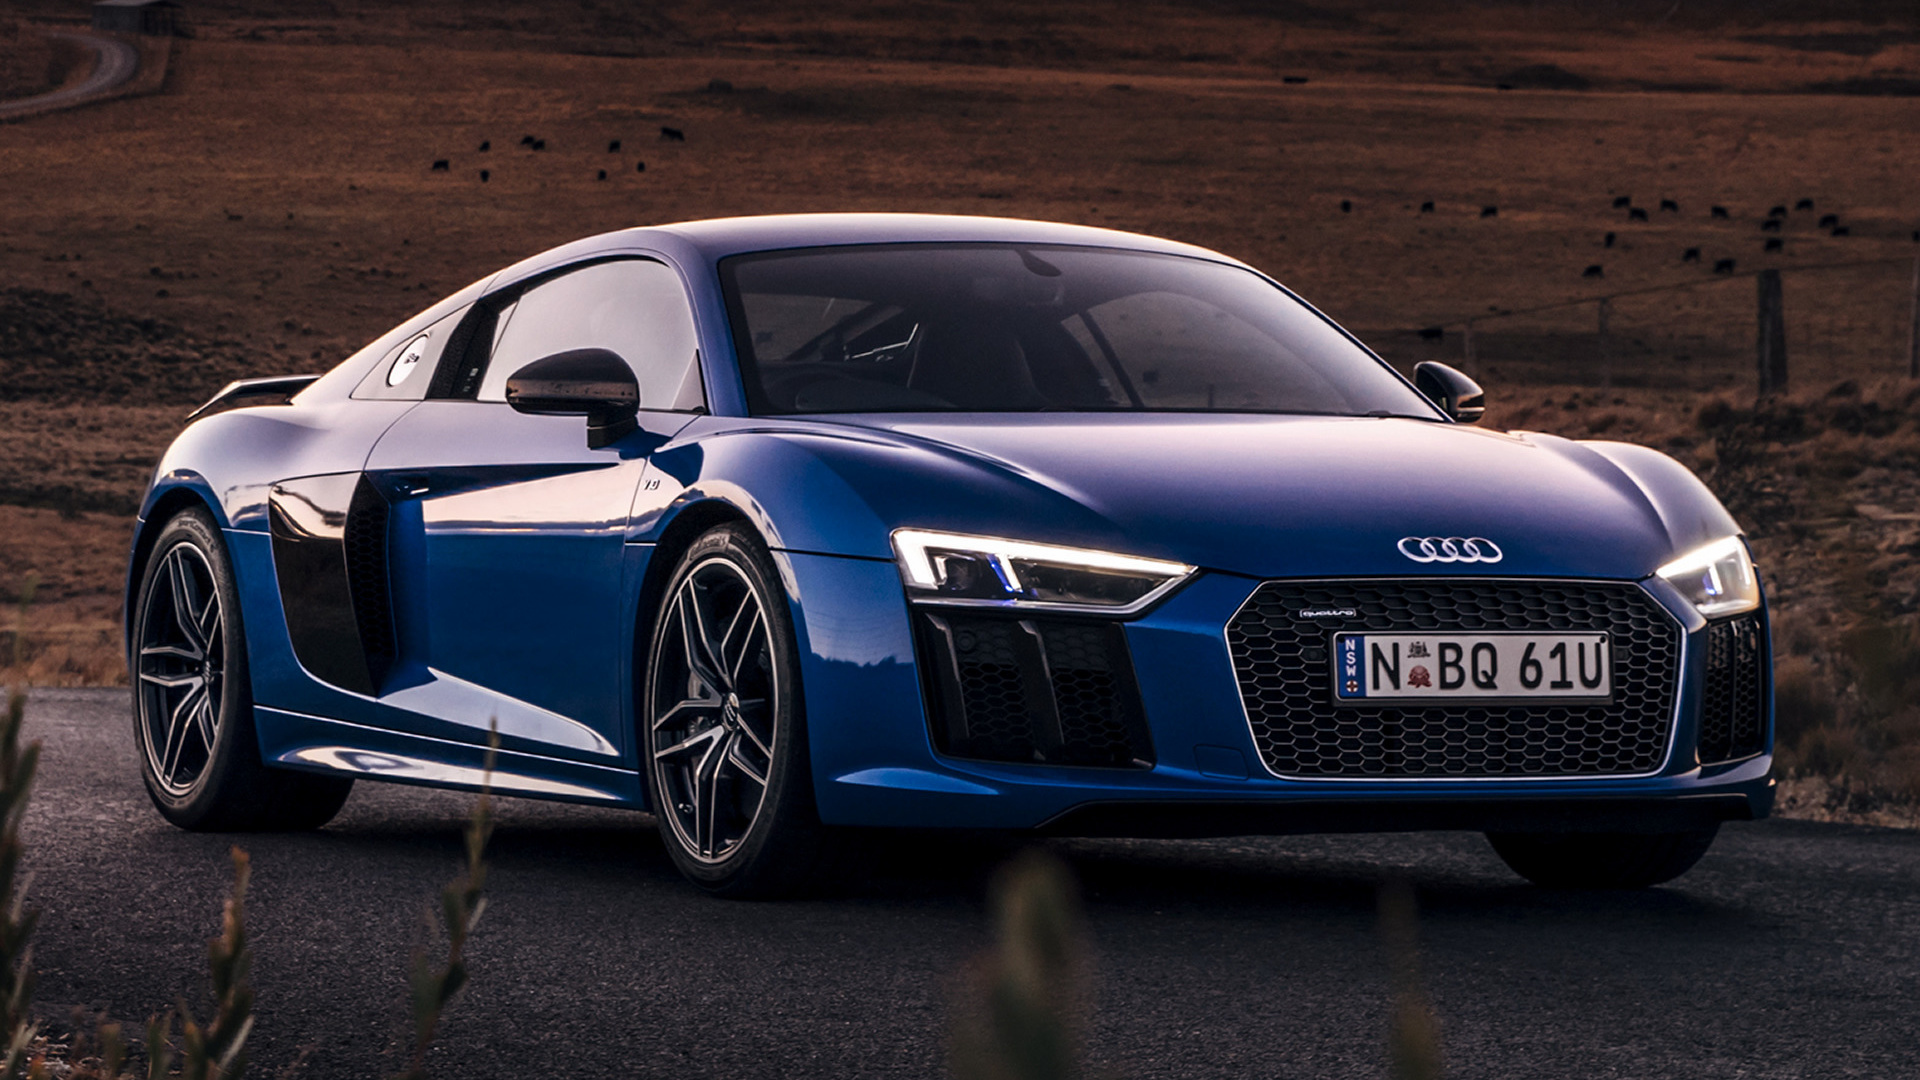 Audi R8 V10 plus 2016 AU Wallpapers and HD Images   Car 1920x1080